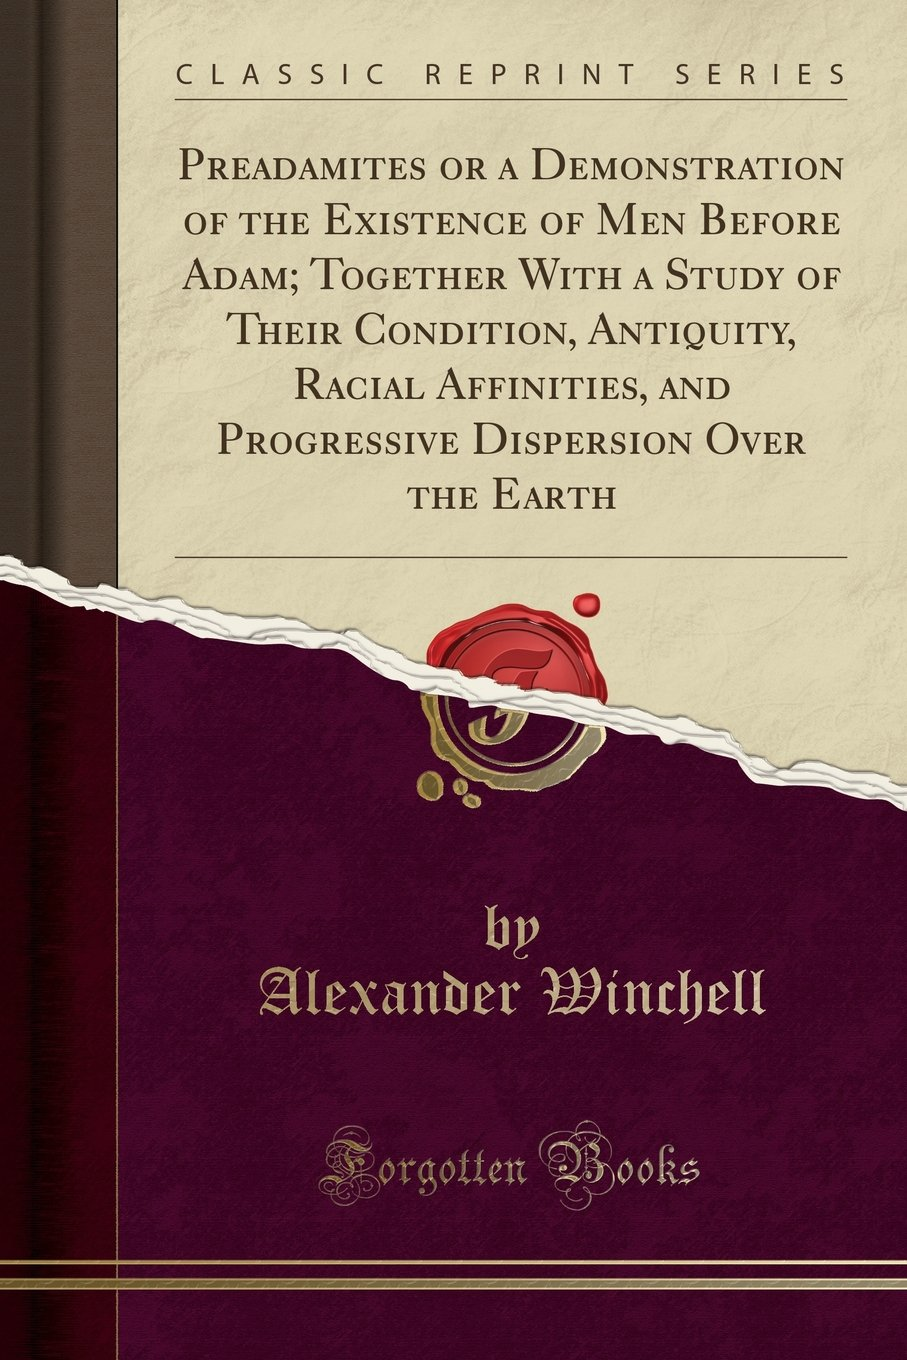 Download Preadamites or a Demonstration of the Existence of Men Before Adam; Together With a Study of Their Condition, Antiquity, Racial Affinities, and Progressive Dispersion Over the Earth (Classic Reprint) ebook